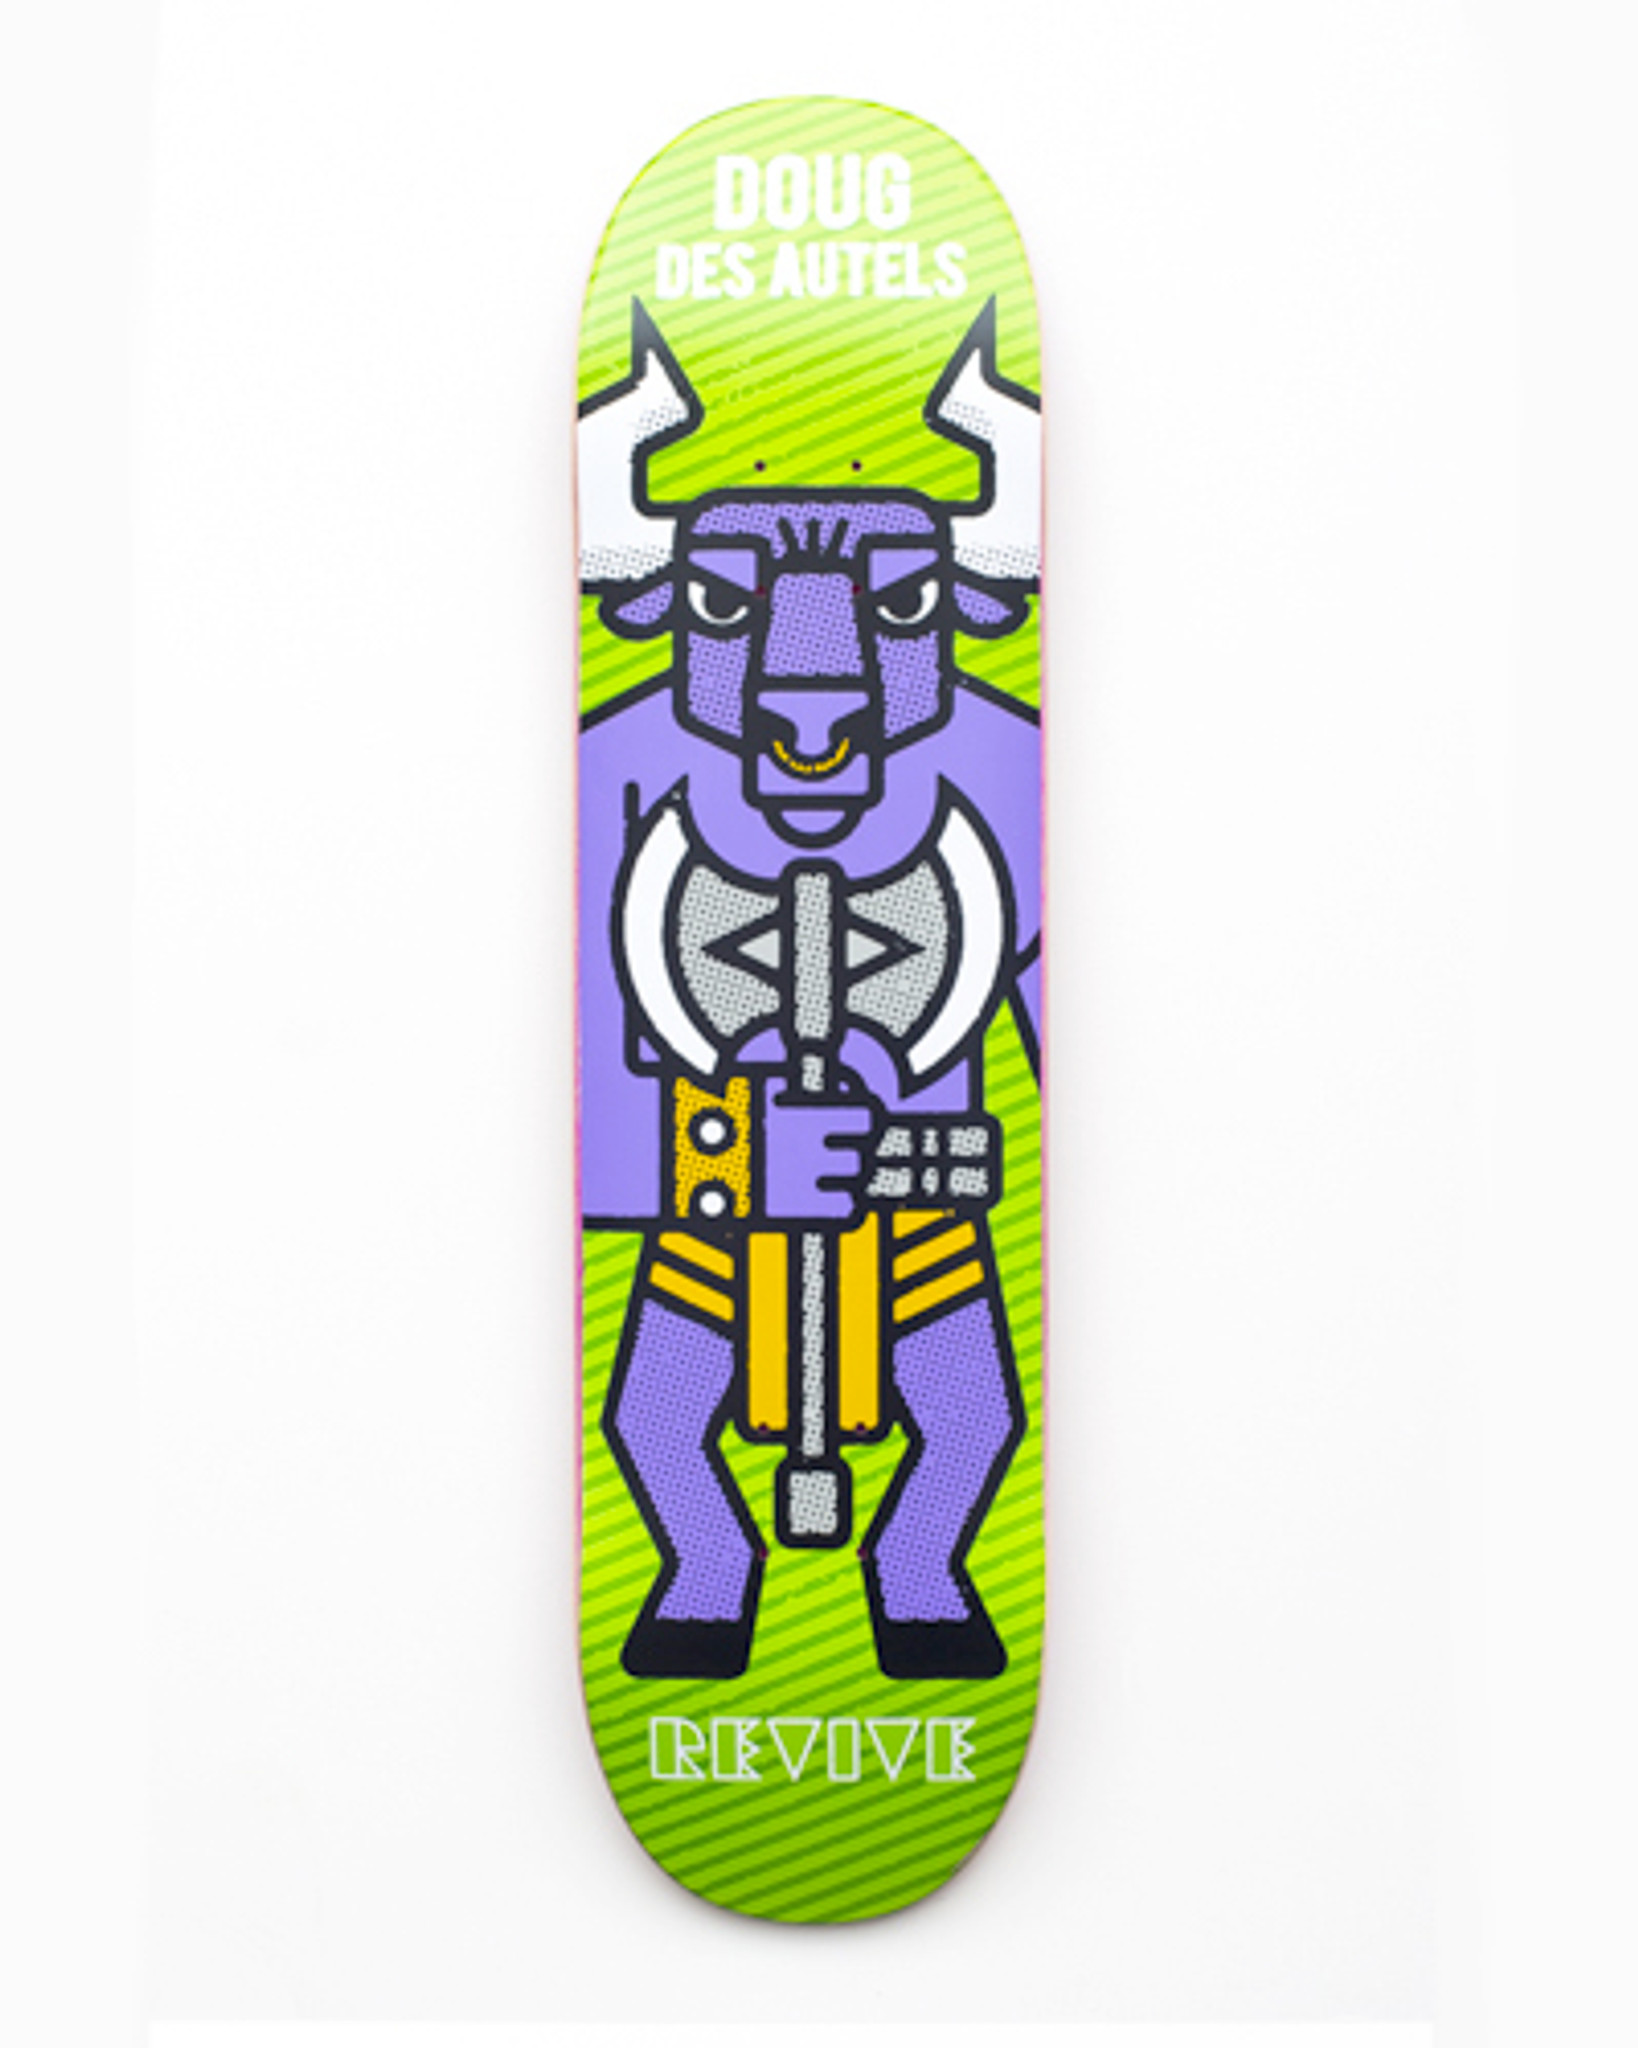 9dac4c65 Doug Des Autels Minotaur | Revive Skateboard Deck